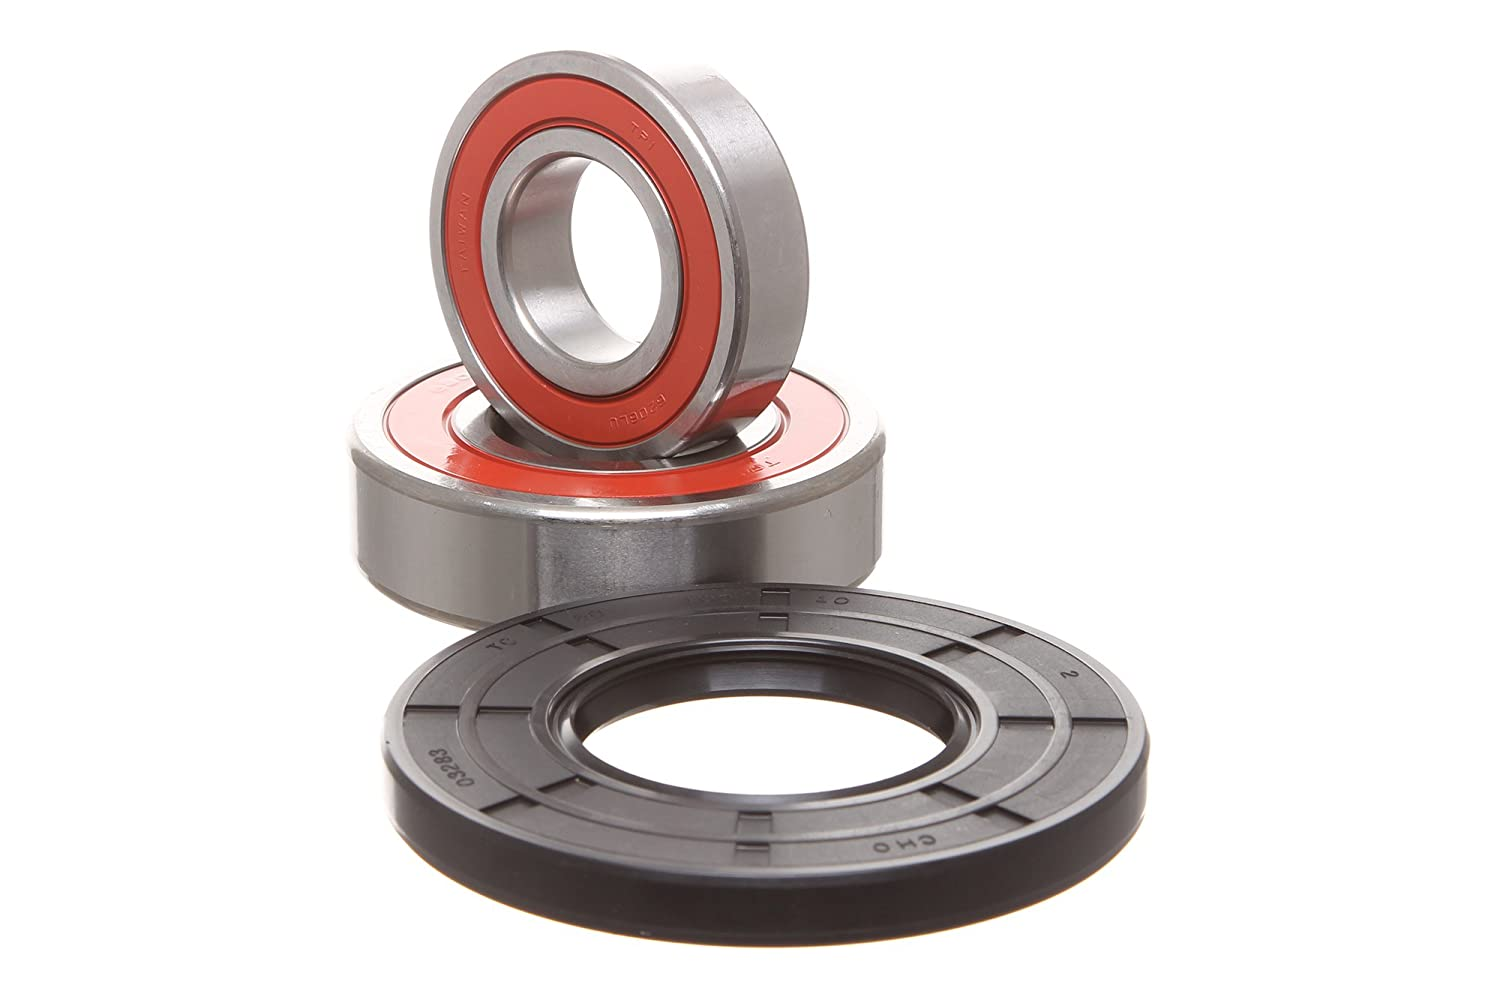 REPLACEMENTKITS.COM - Brand Fits Kenmore Elite HE3T HE4T & HE5T Whirlpool Replacement Bearing & Seal Kit -